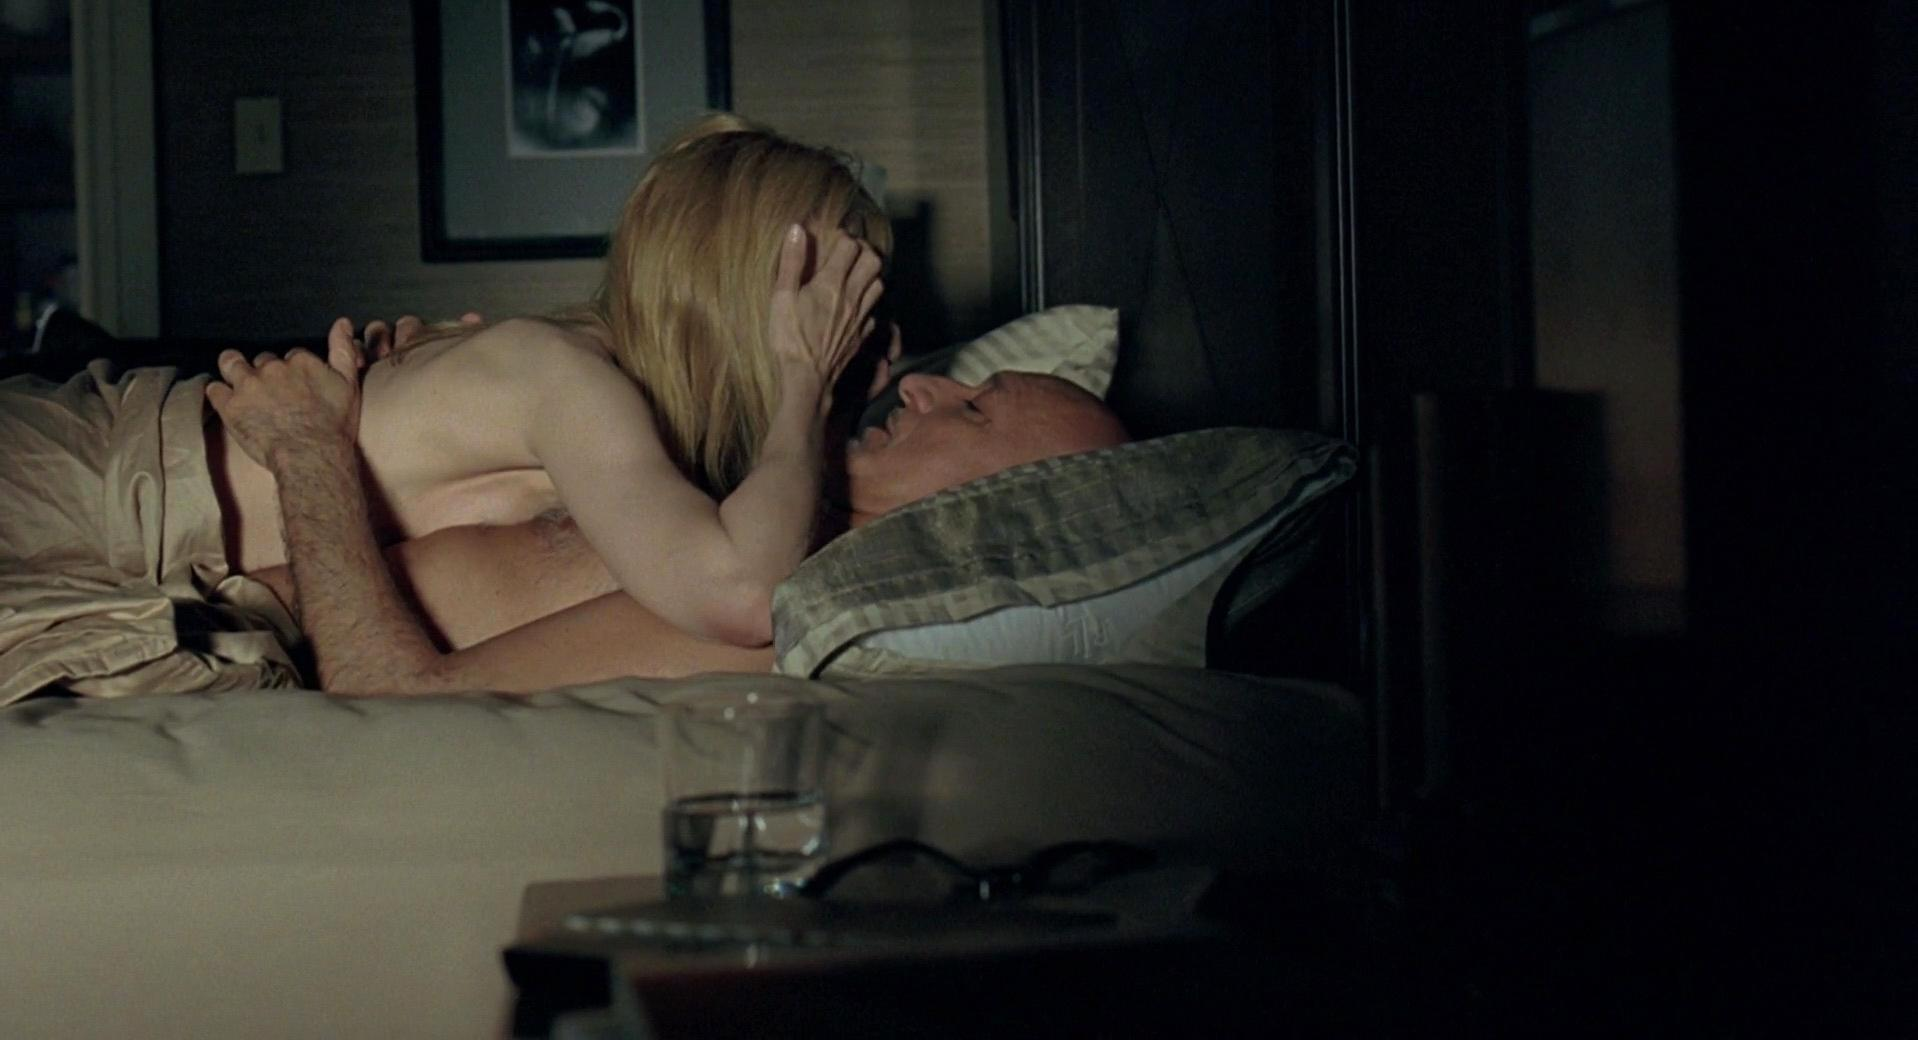 Patricia clarkson nude in october gale scandalplanetcom - 3 part 7